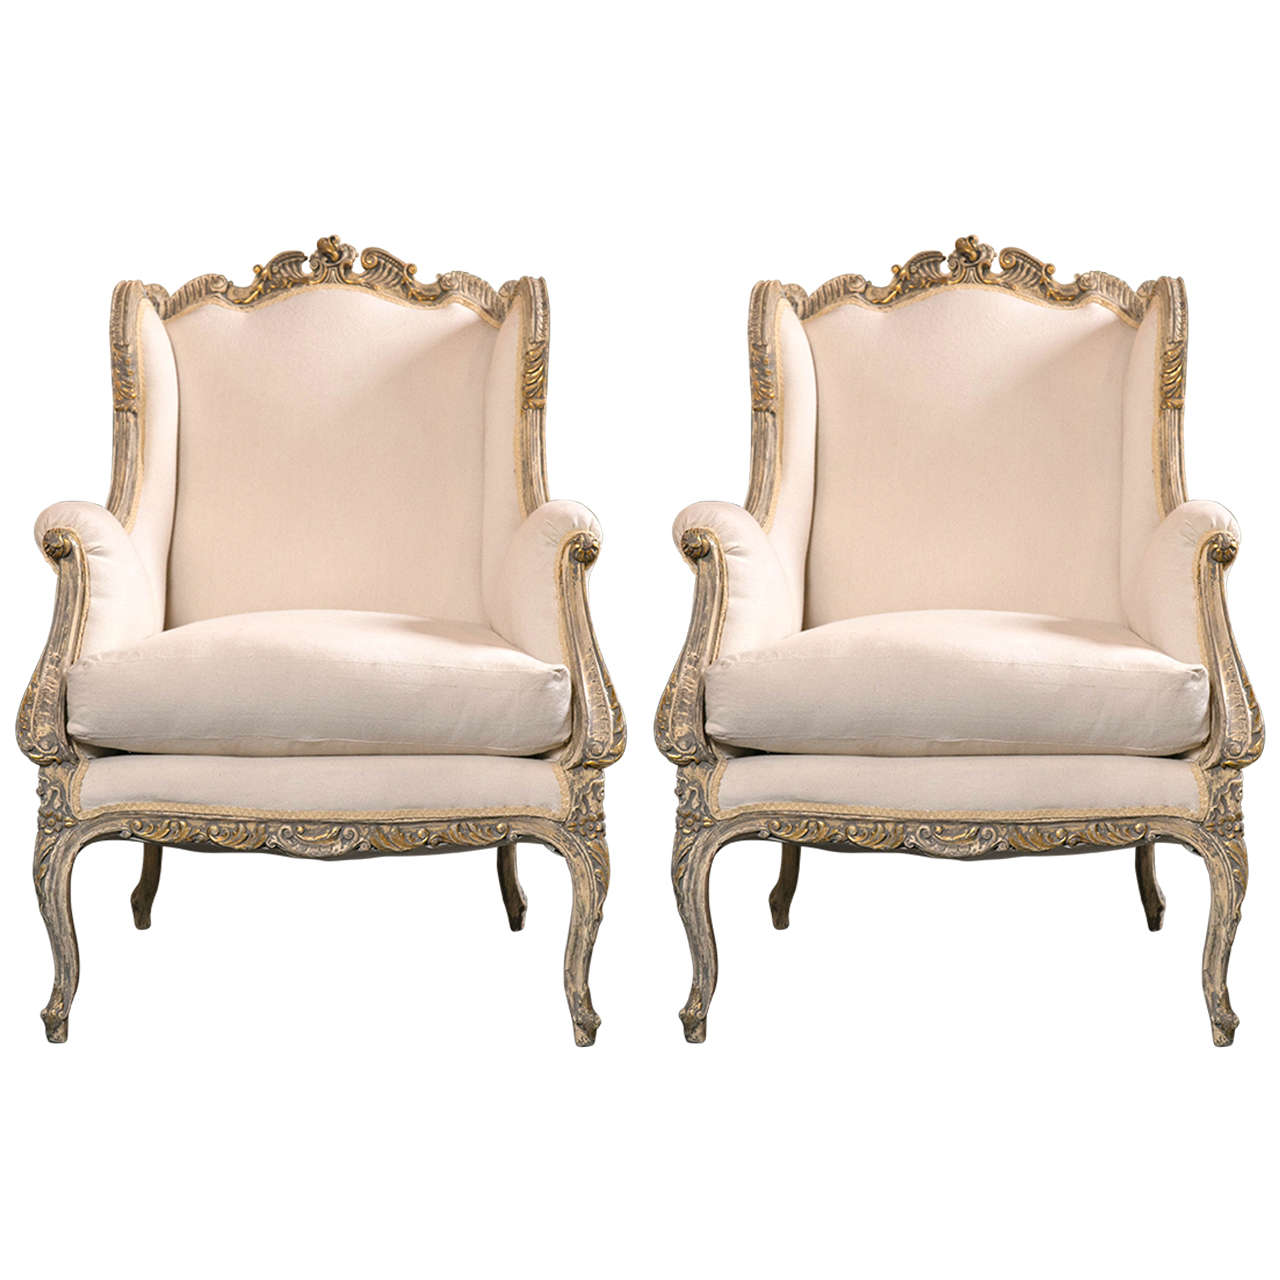 Bergere chair french rococo - Pair Of French Rococo Style Wingback Berg Re Chairs 1